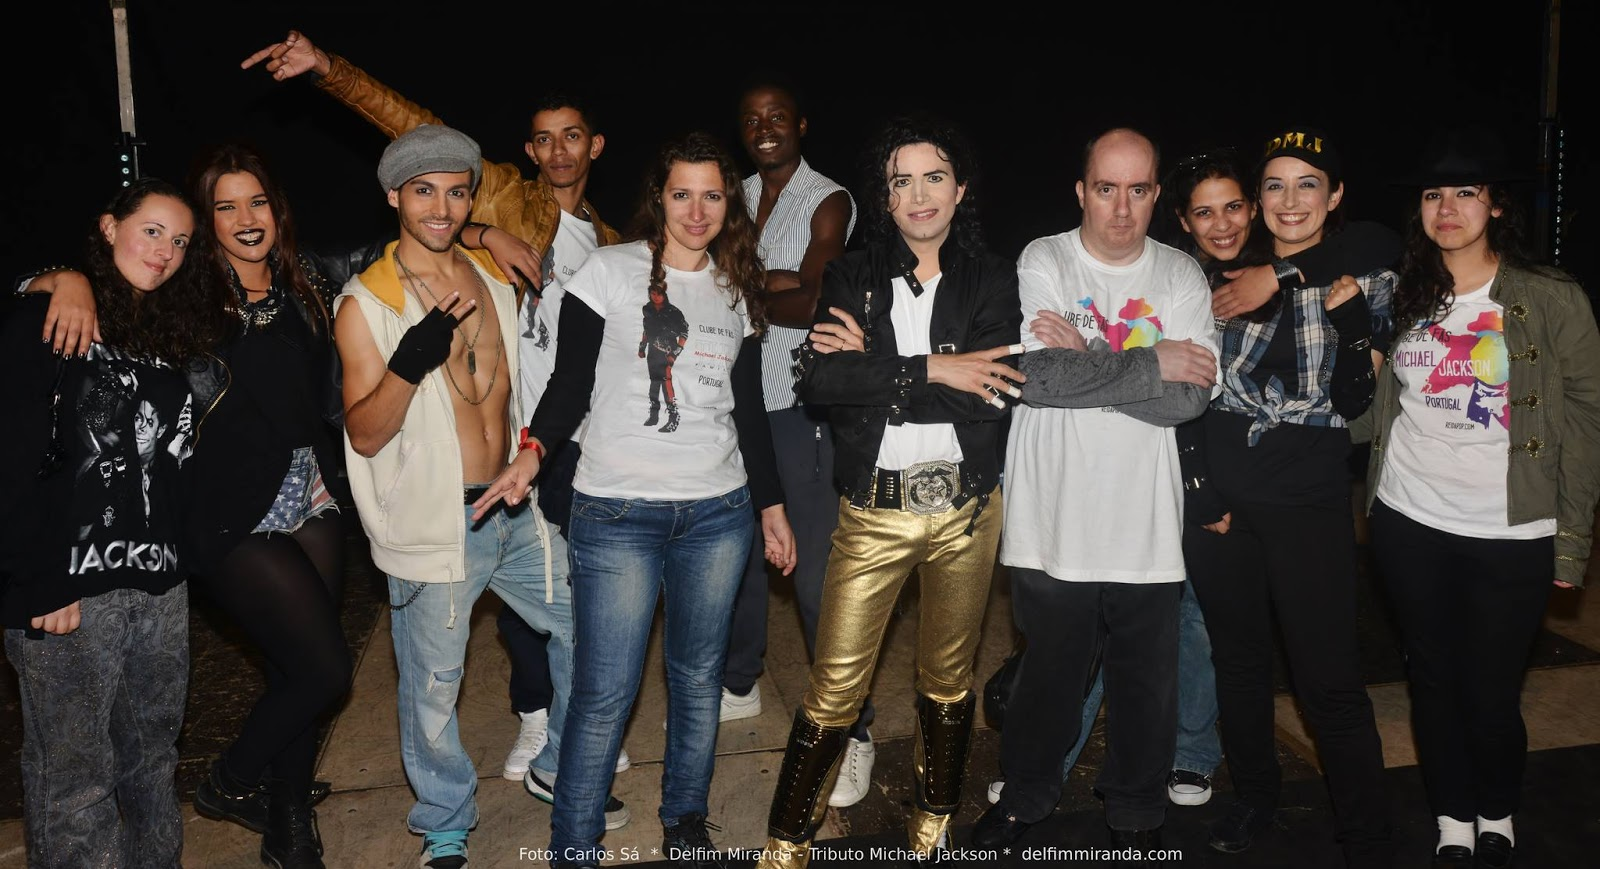 Delfim Miranda - Michael Jackson Tribute - With crew and M.J. Fans after the Show